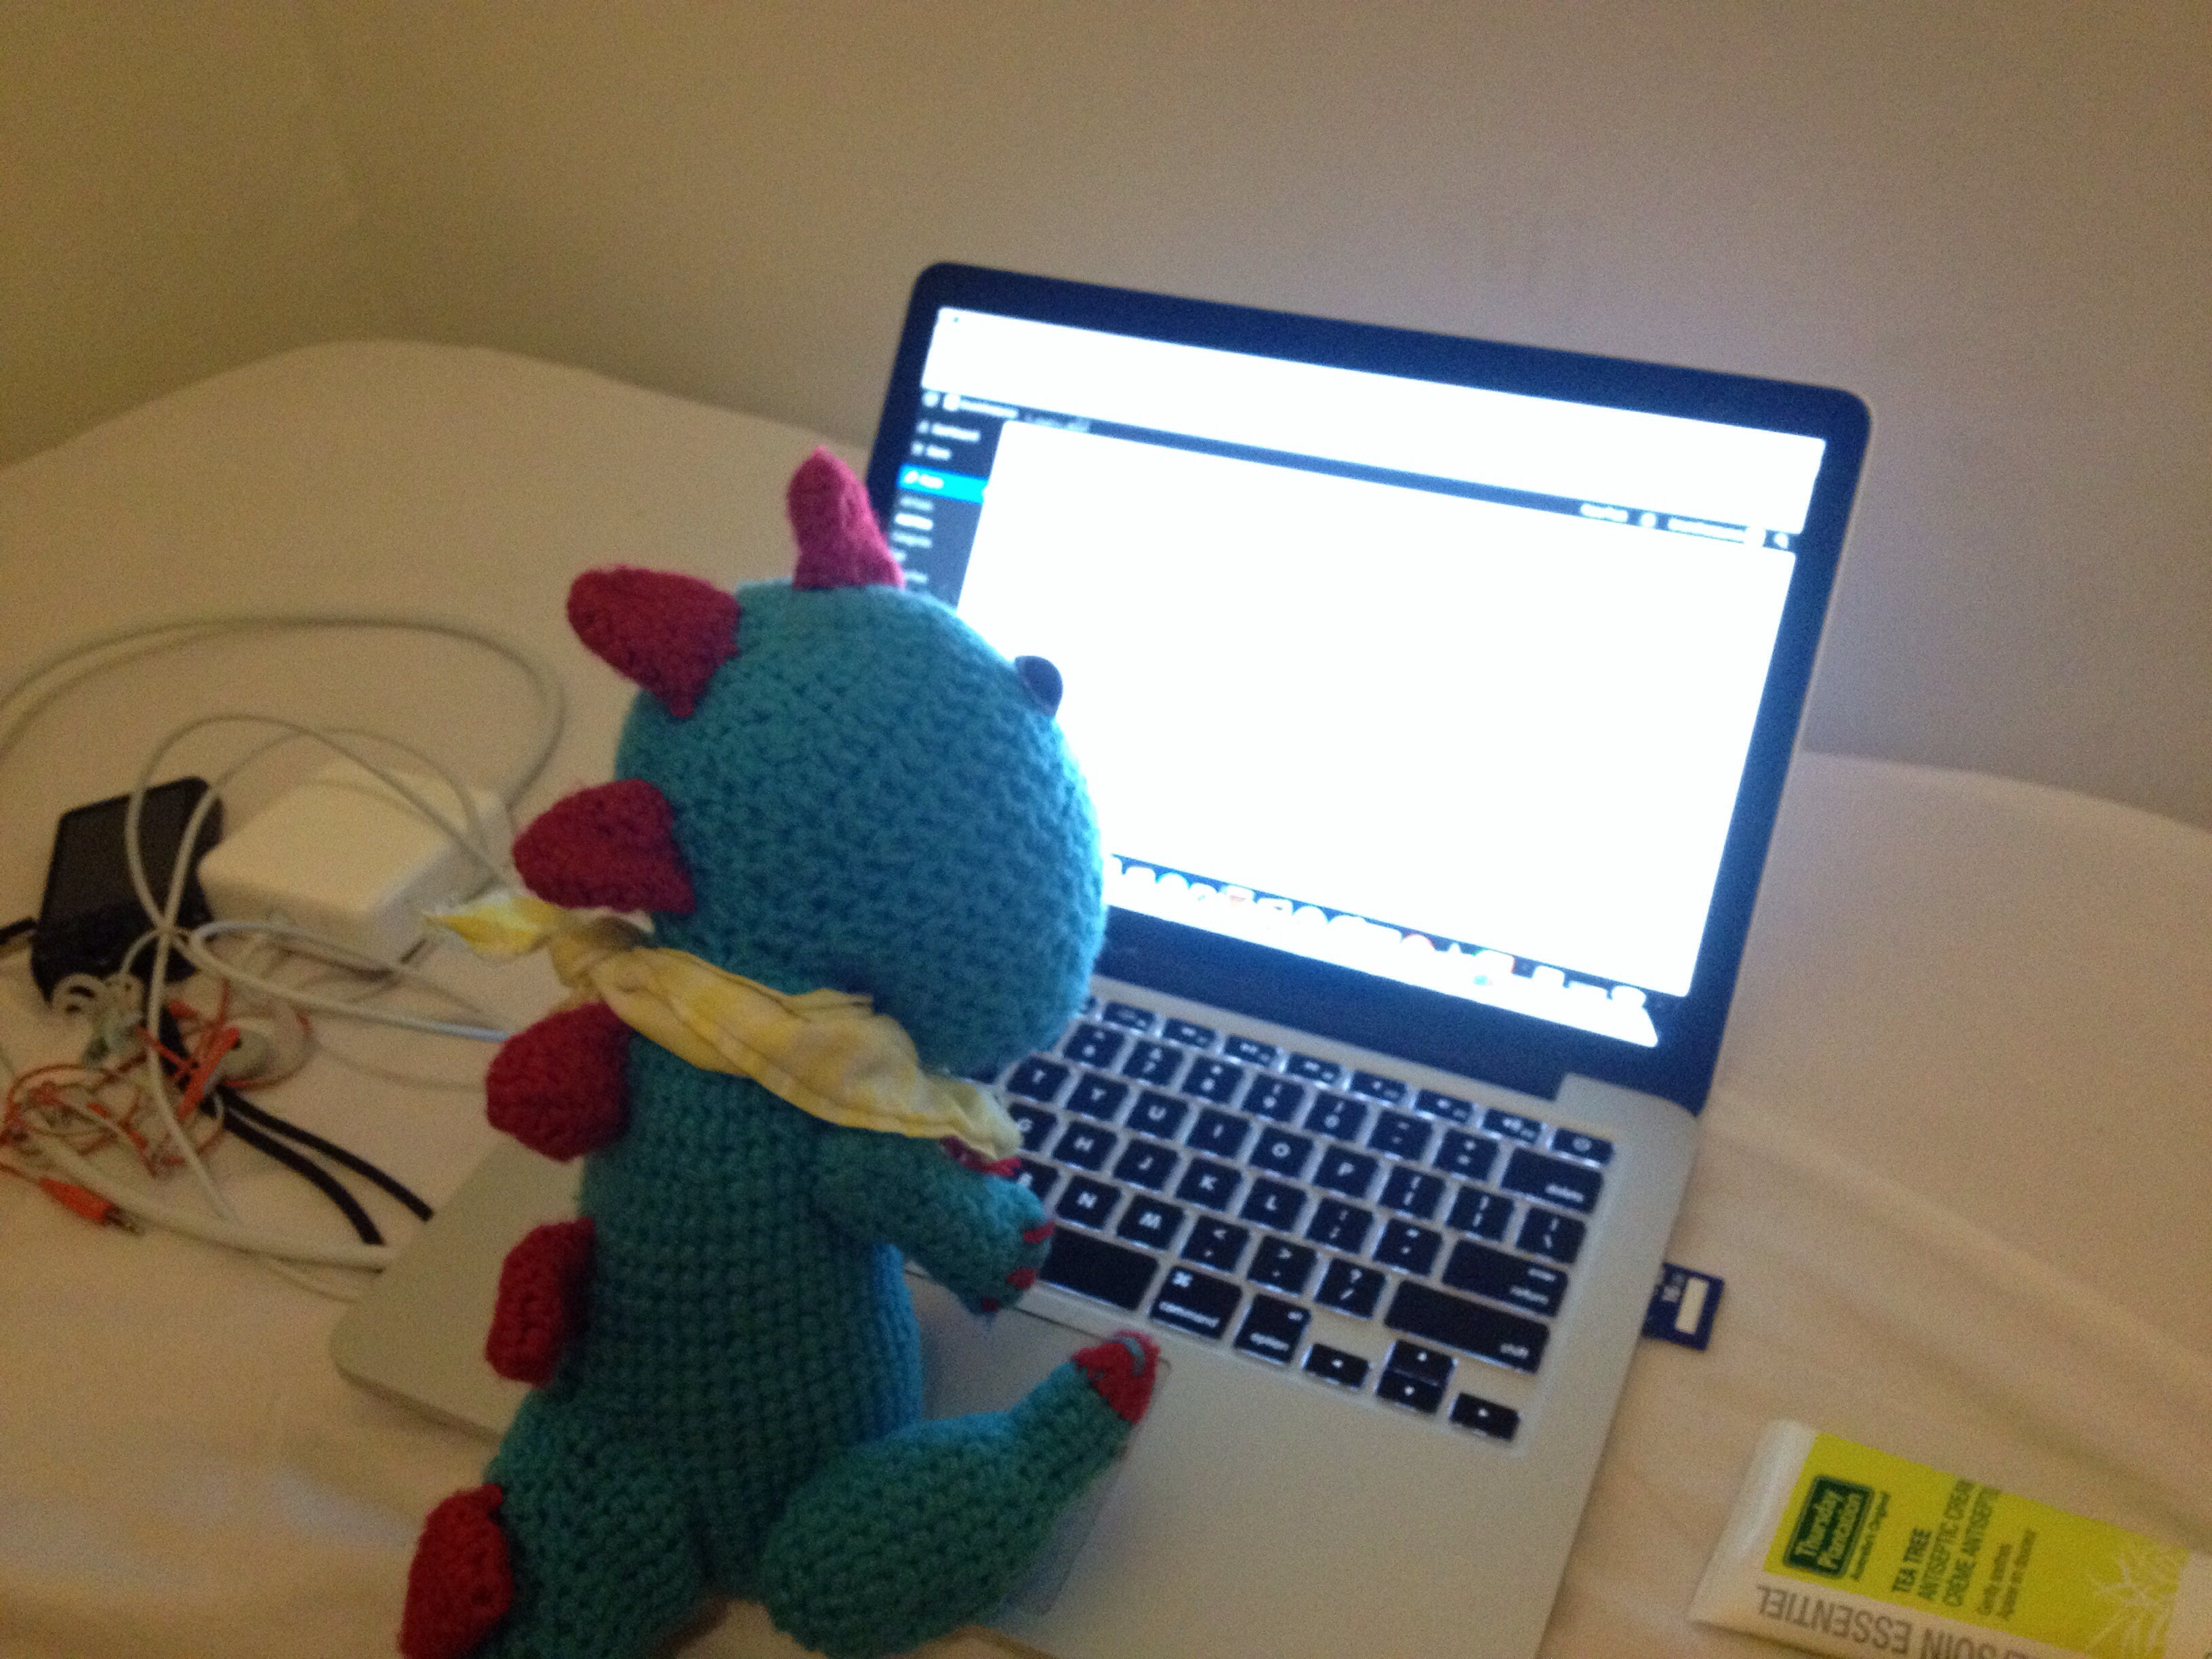 brunchosaurus benny blogging